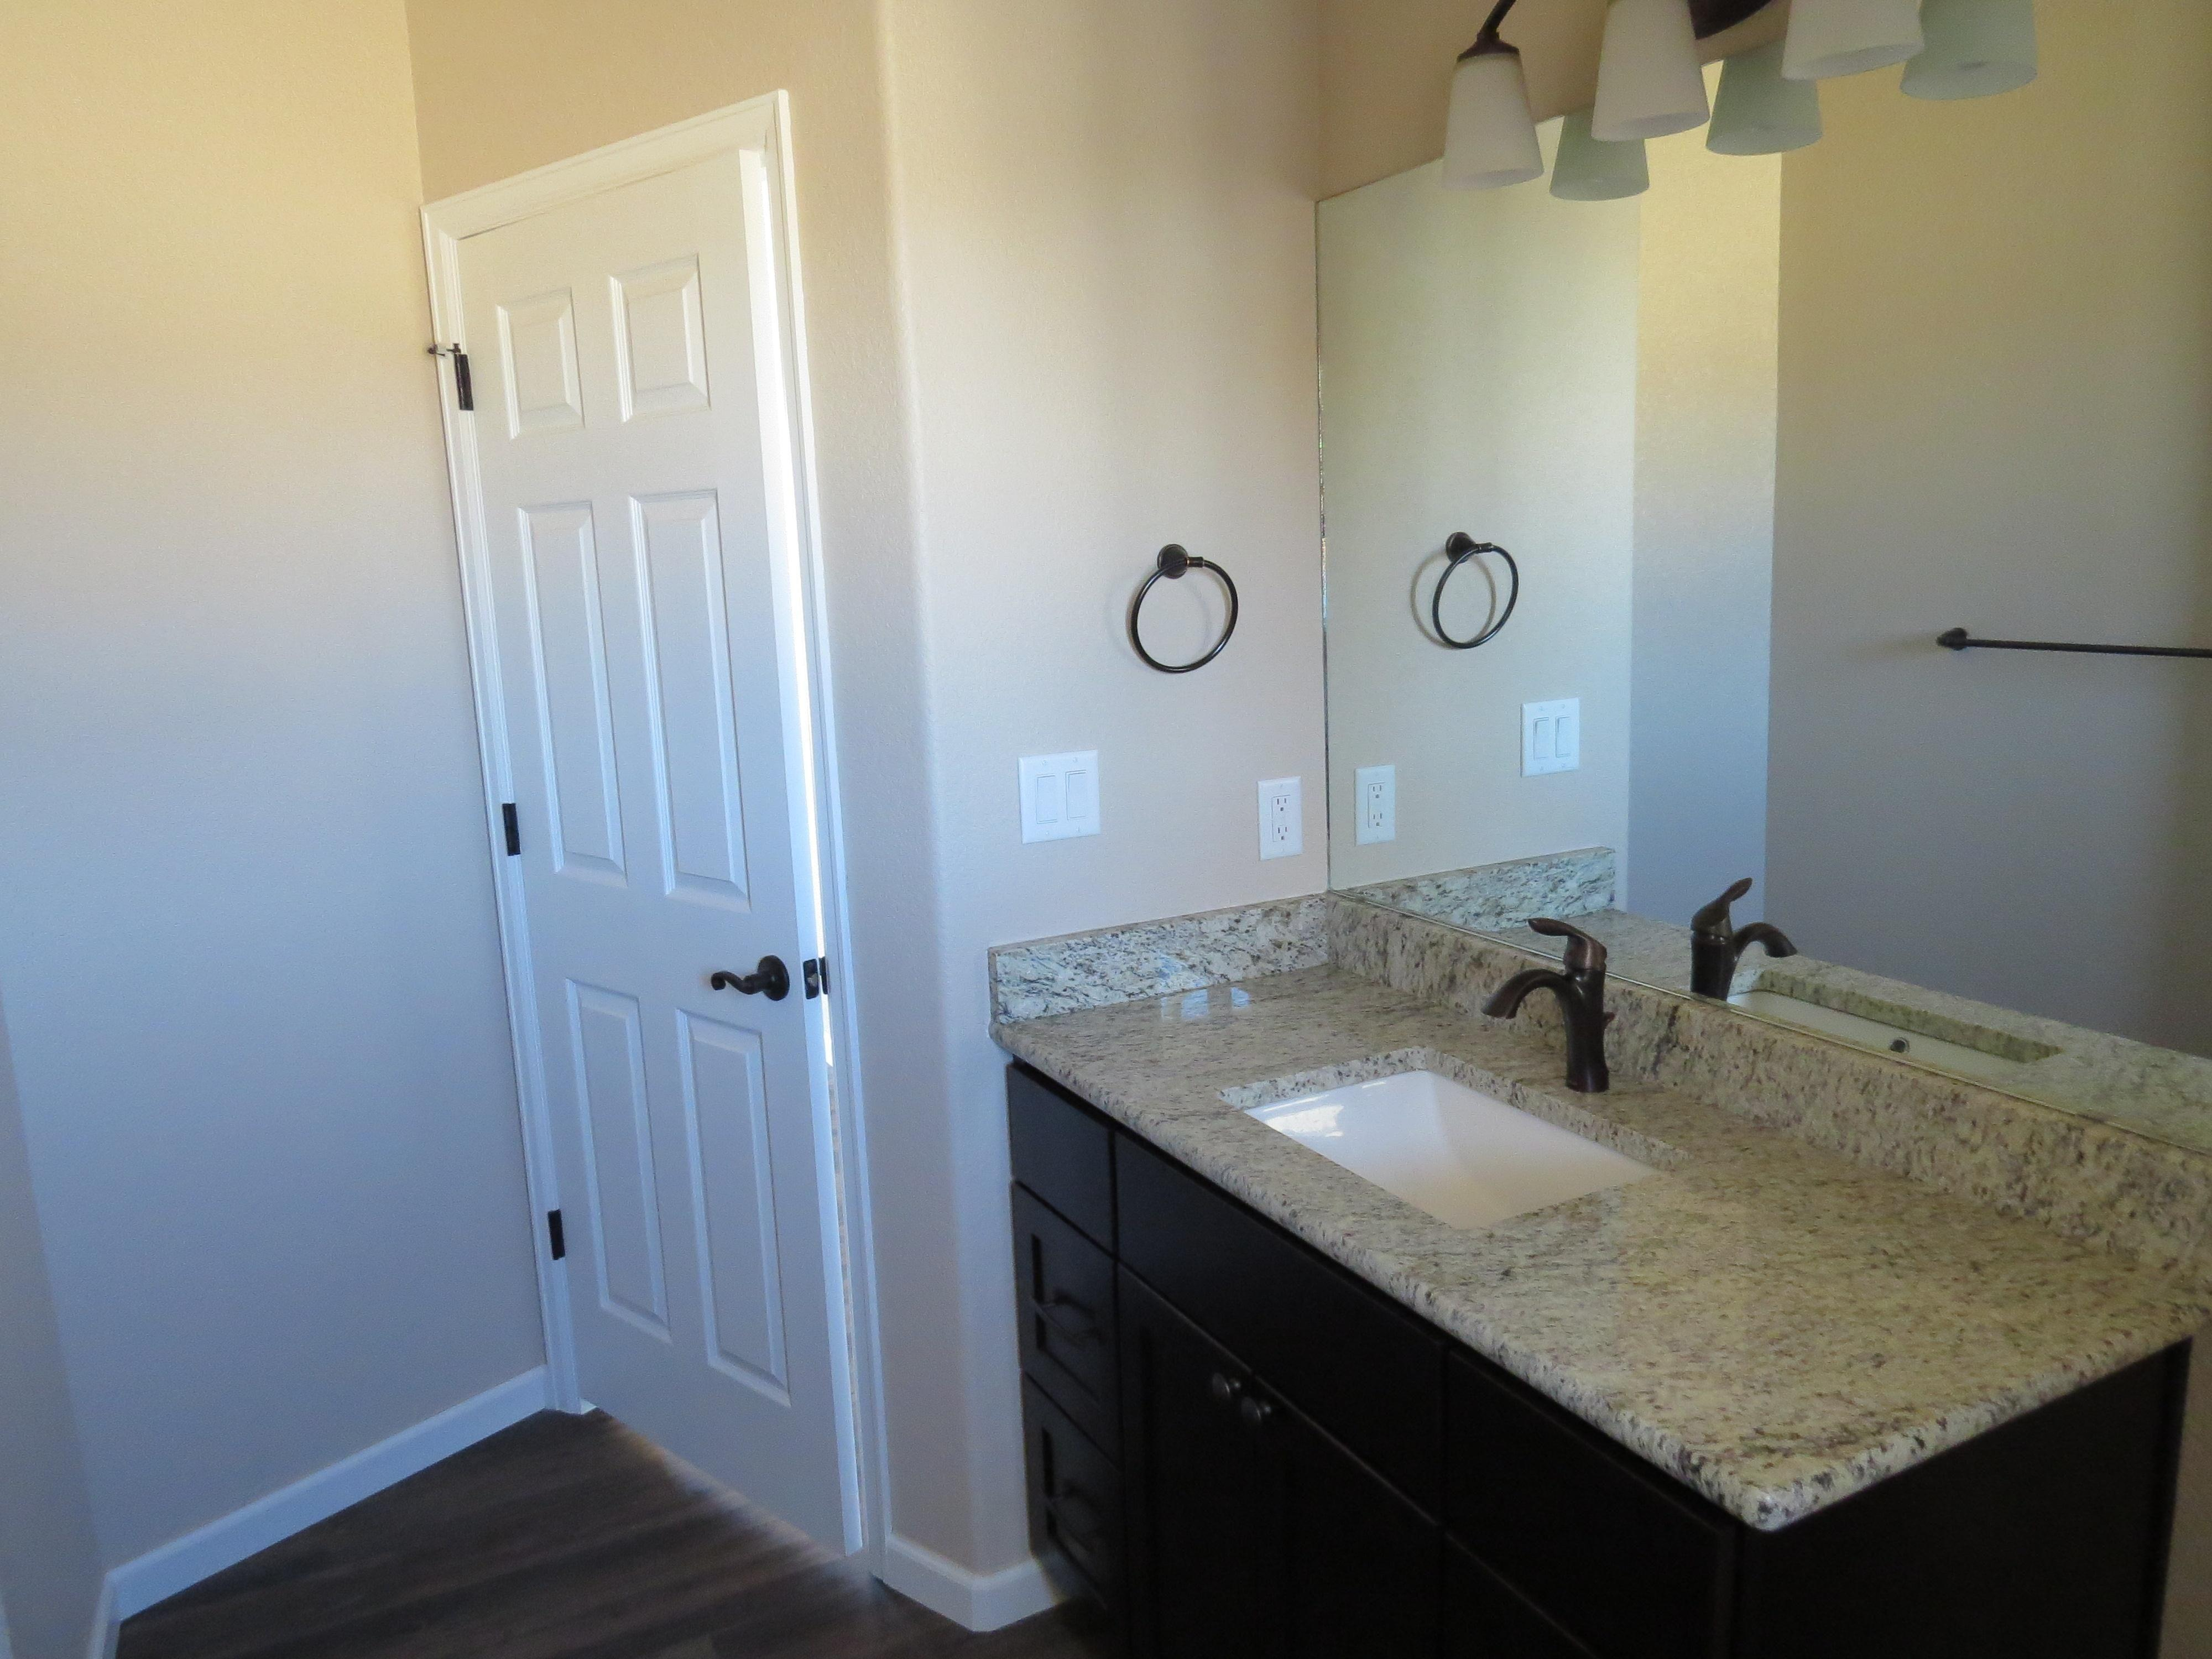 Bathroom featured in the Harmony By Front Range Land, LLC in Pueblo, CO